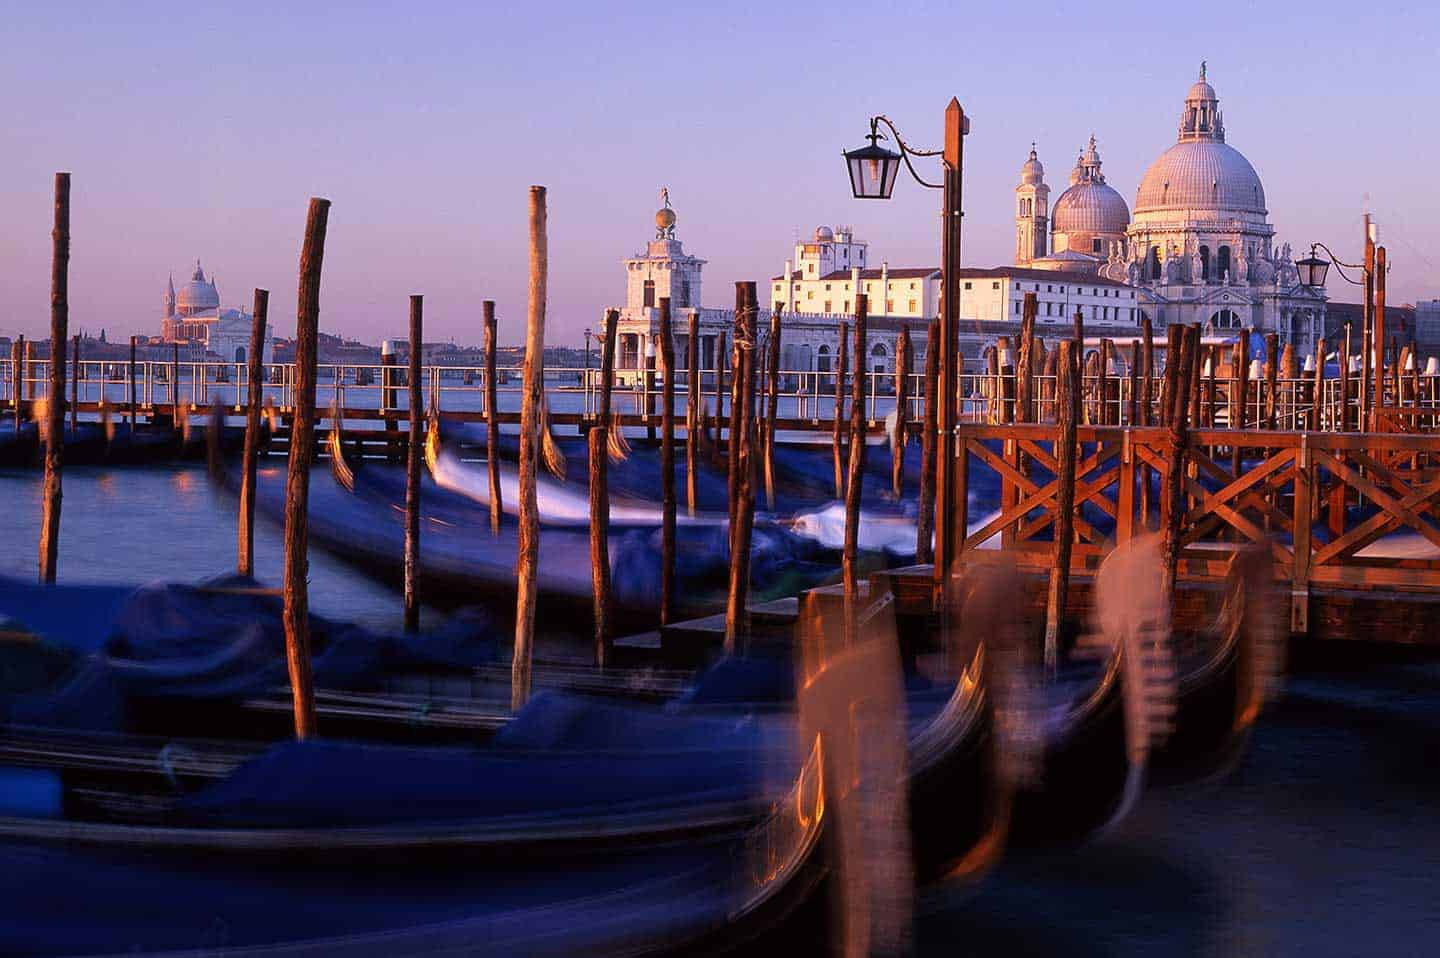 Things to see in Venice Italy Image of Santa MAria della Salute church and gondolas at sunrise